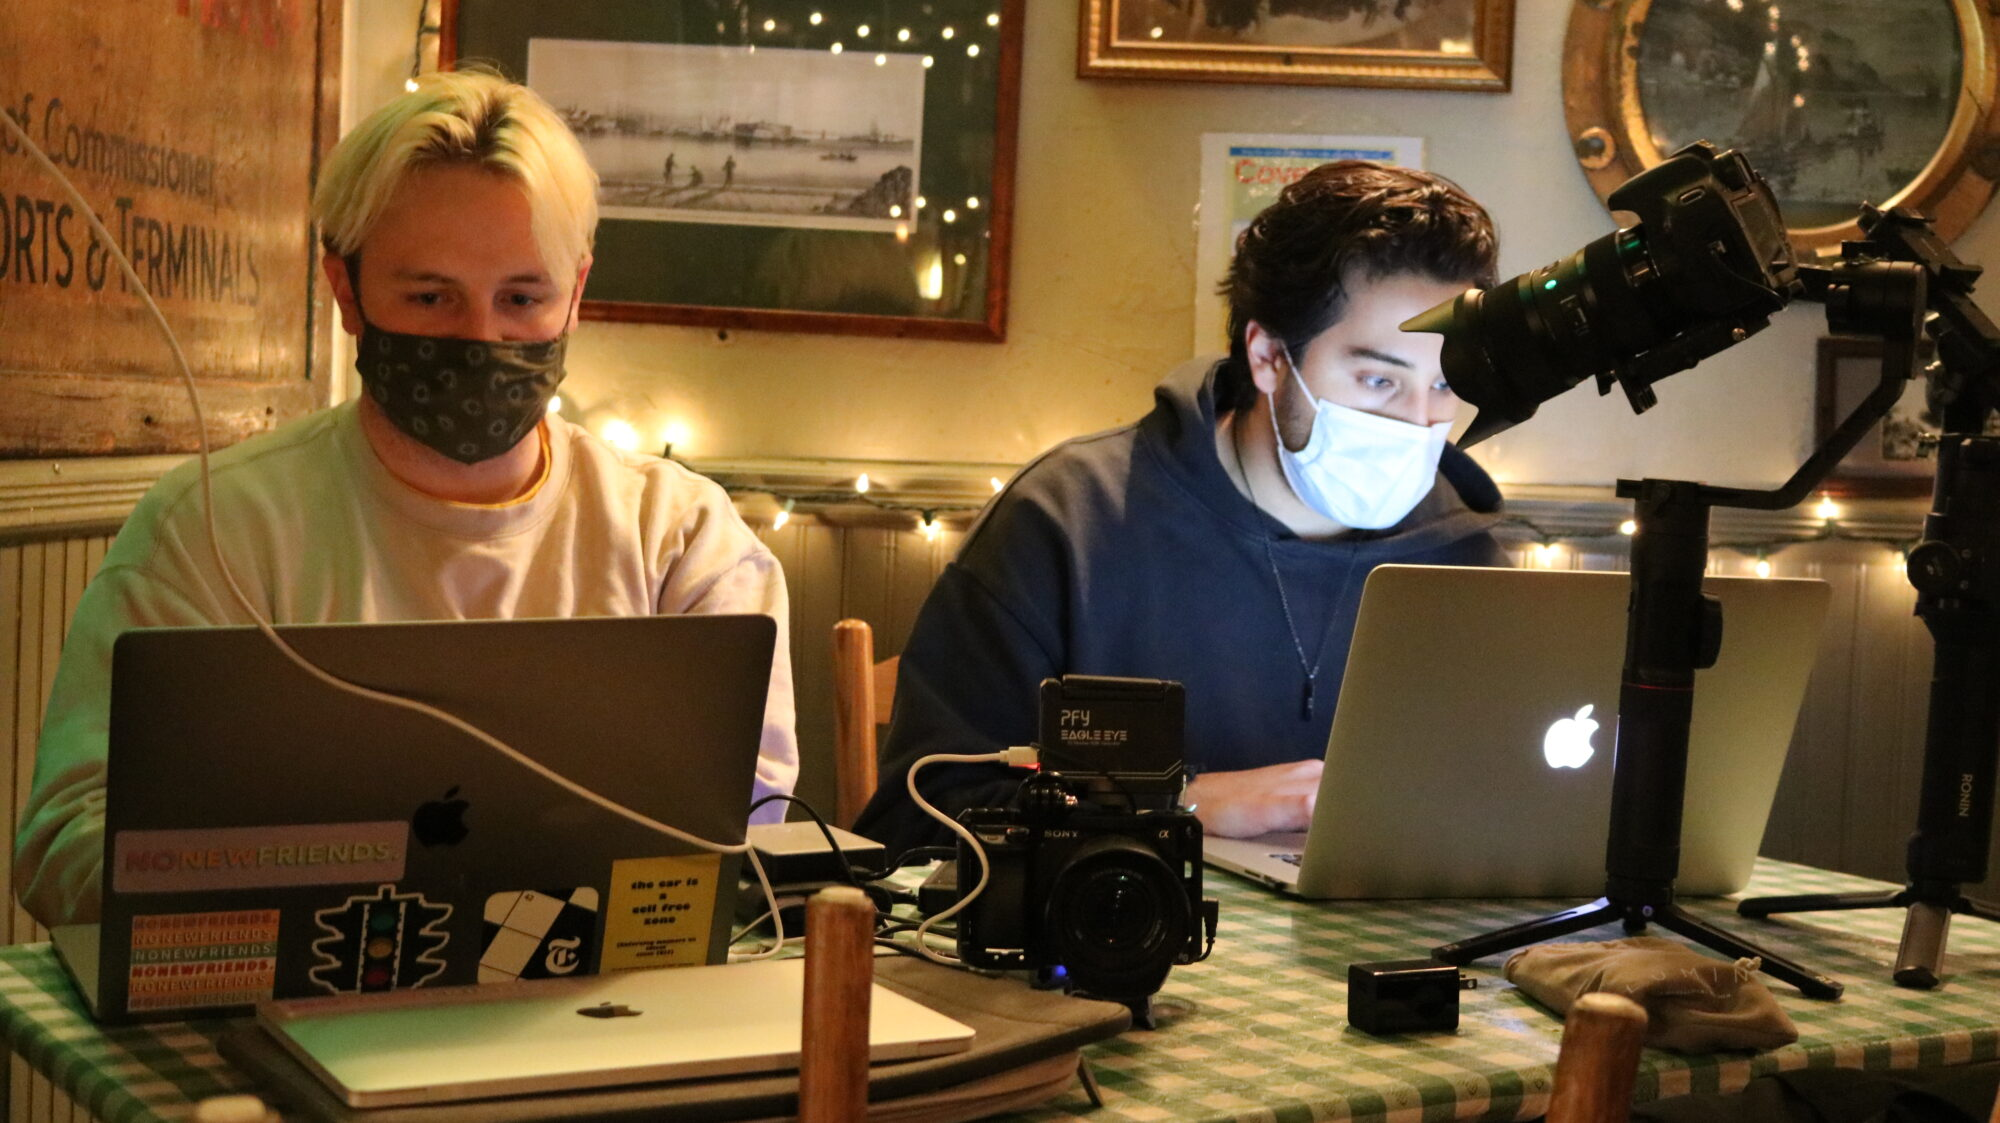 two digital content creators at laptops with video and sound equipment